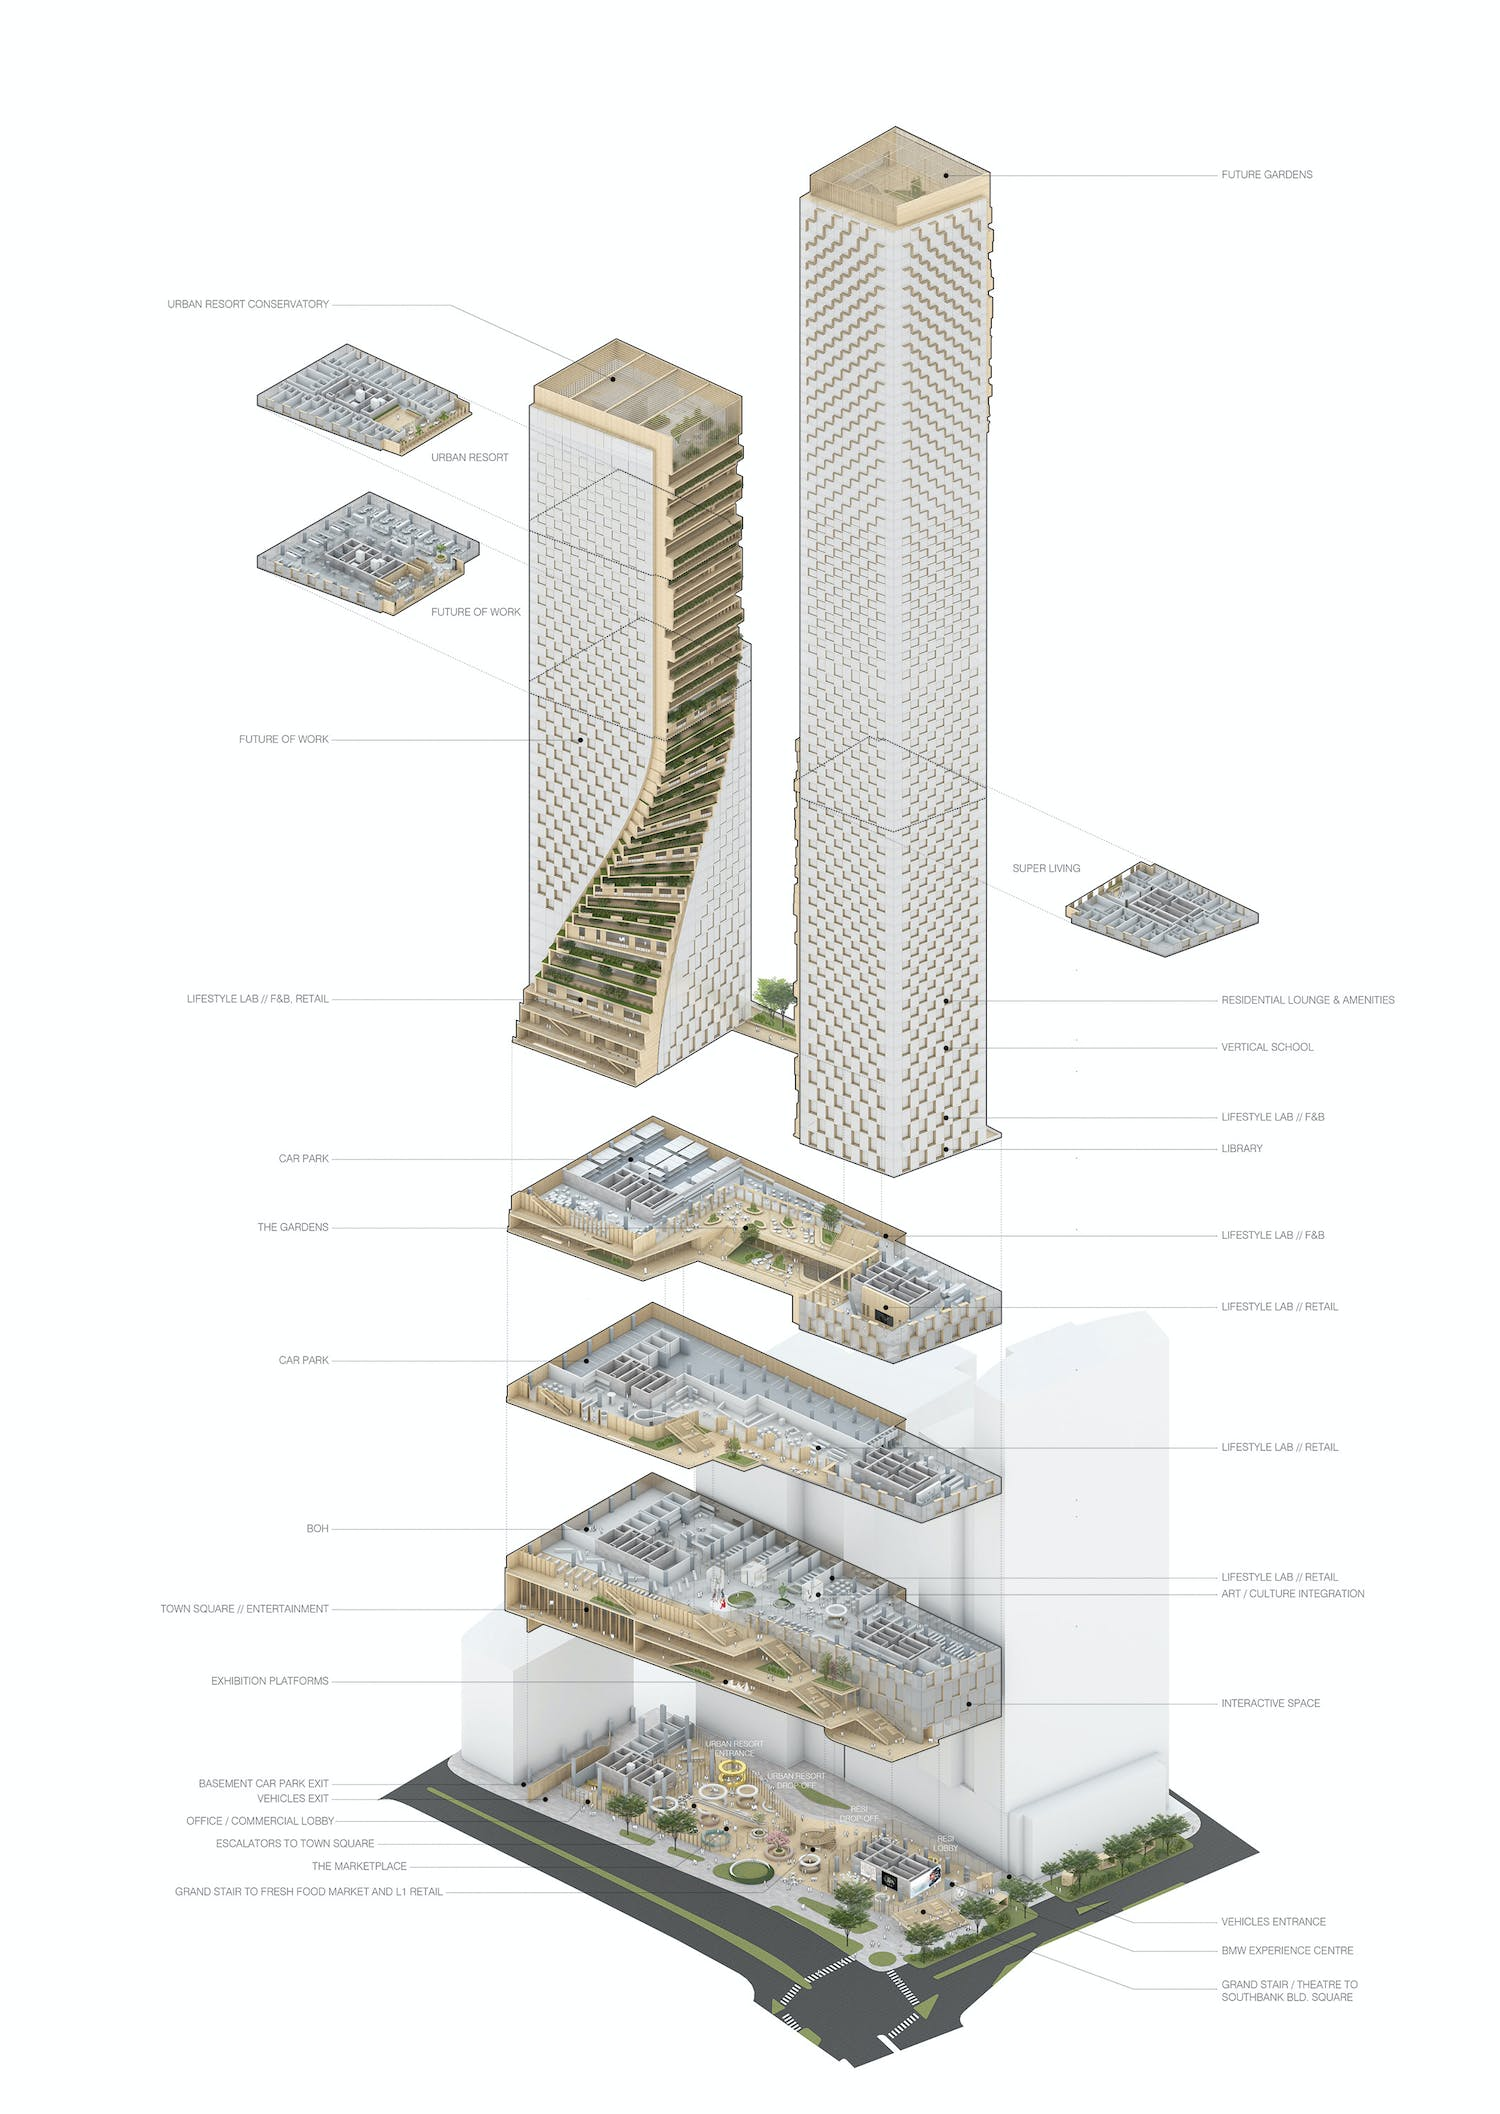 Unstudio Proposes Green Spine Towers For The Beulah